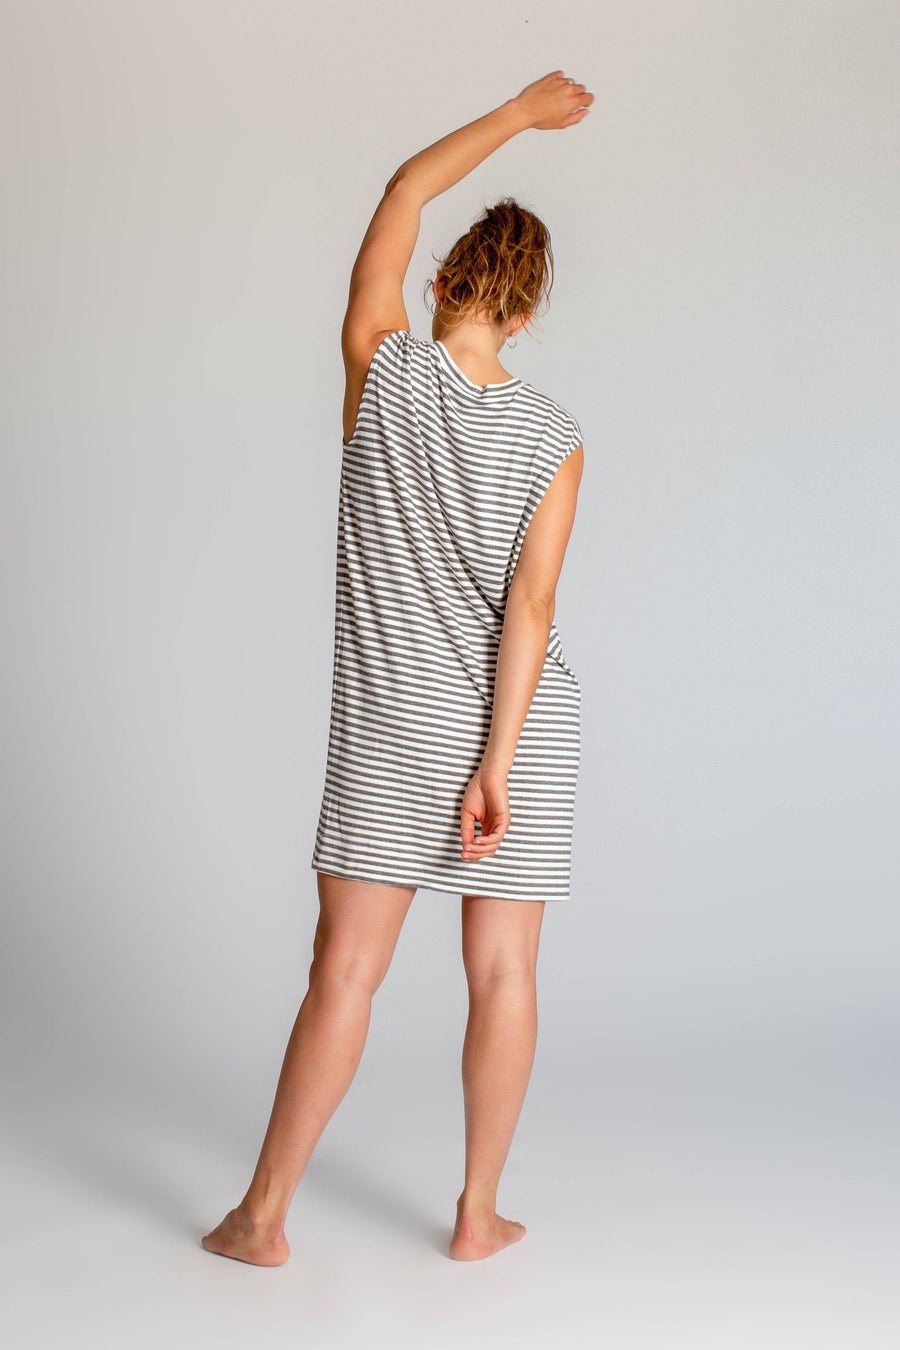 Limited Edition Striped Cup Sleeve Dress womens clothing rippleyogawear